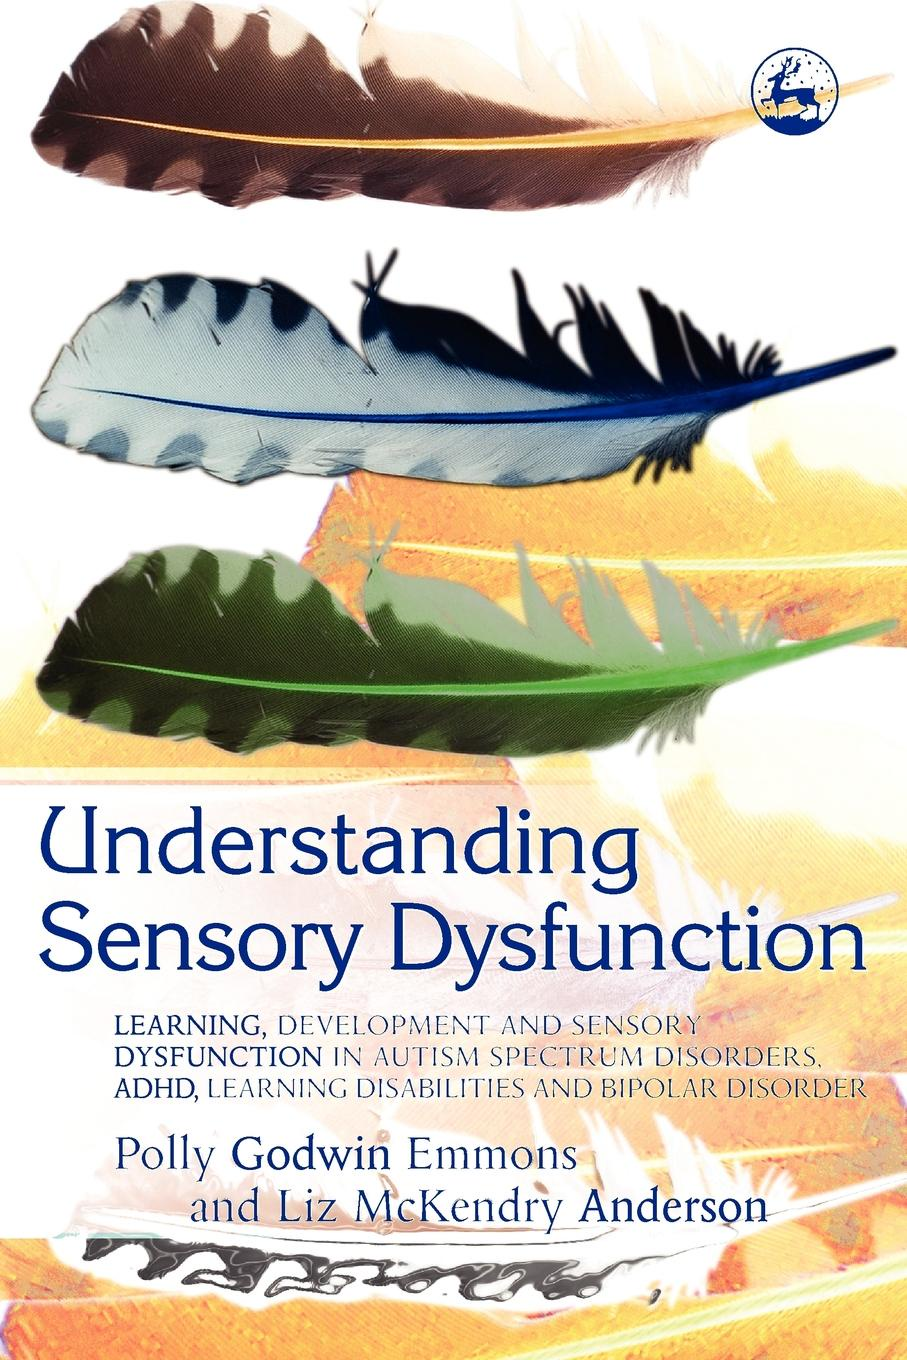 Polly Godwin Emmons, Liz McKendry Anderson Understanding Sensory Dysfunction. Learning Development and Sensory Dysfunction in Autism Spectrum Disorders, ADHD, Learning Disabilities and Bipolar ventola pamela e essentials of autism spectrum disorders evaluation and assessment